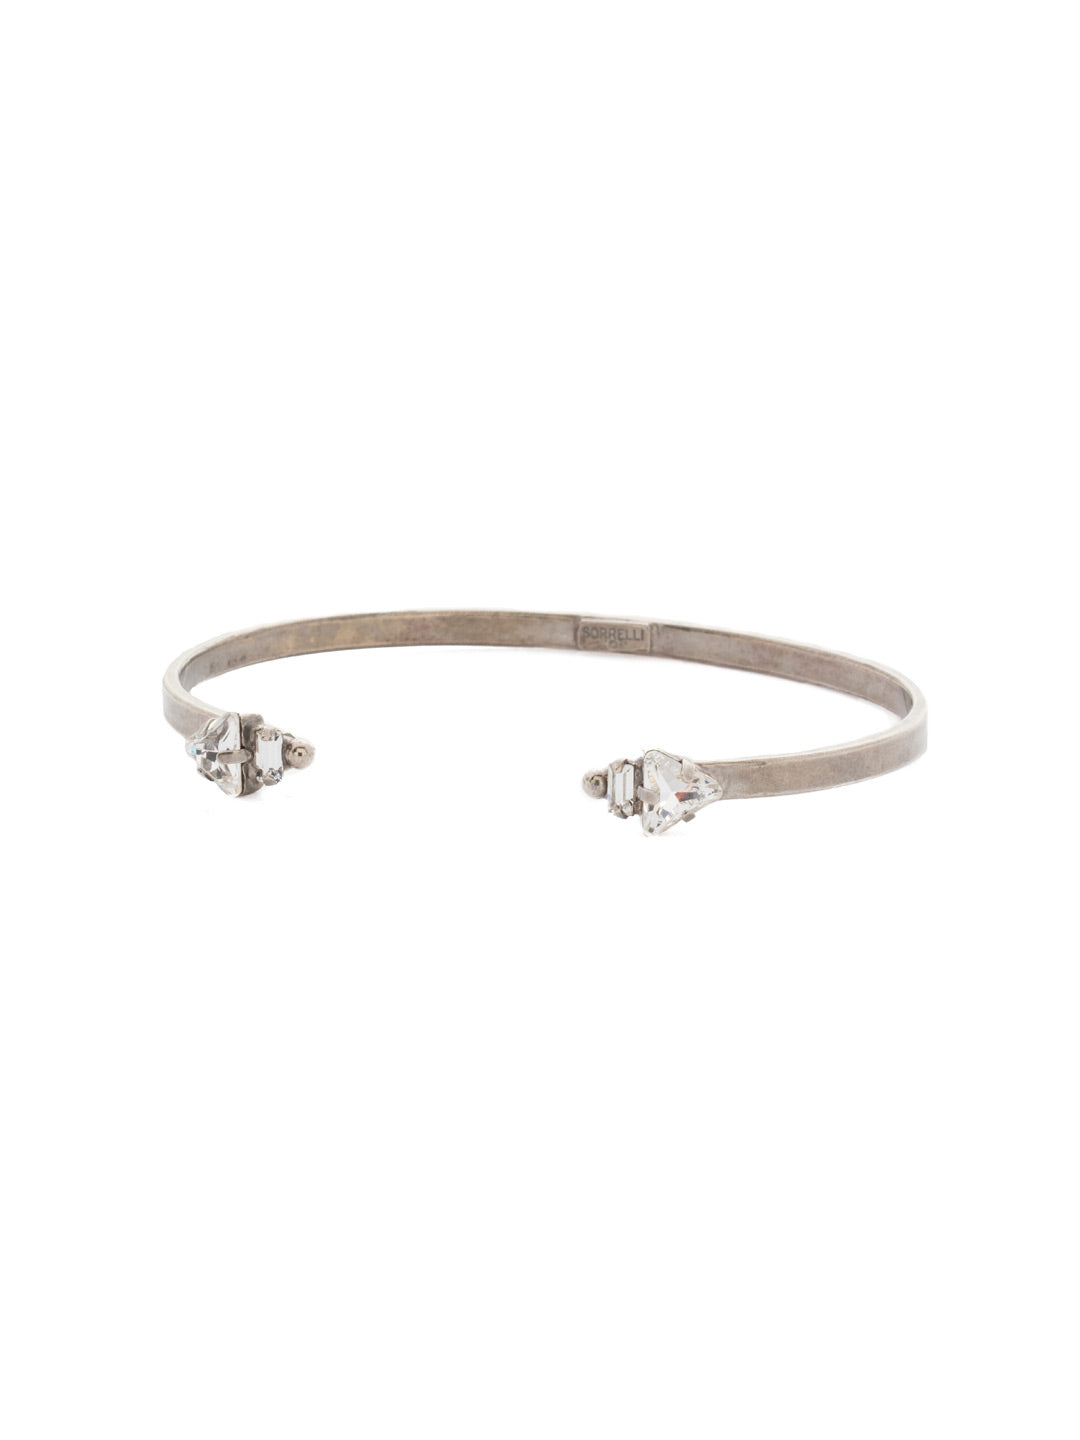 Open Ended Cuff Bracelet - BDM21ASCRY